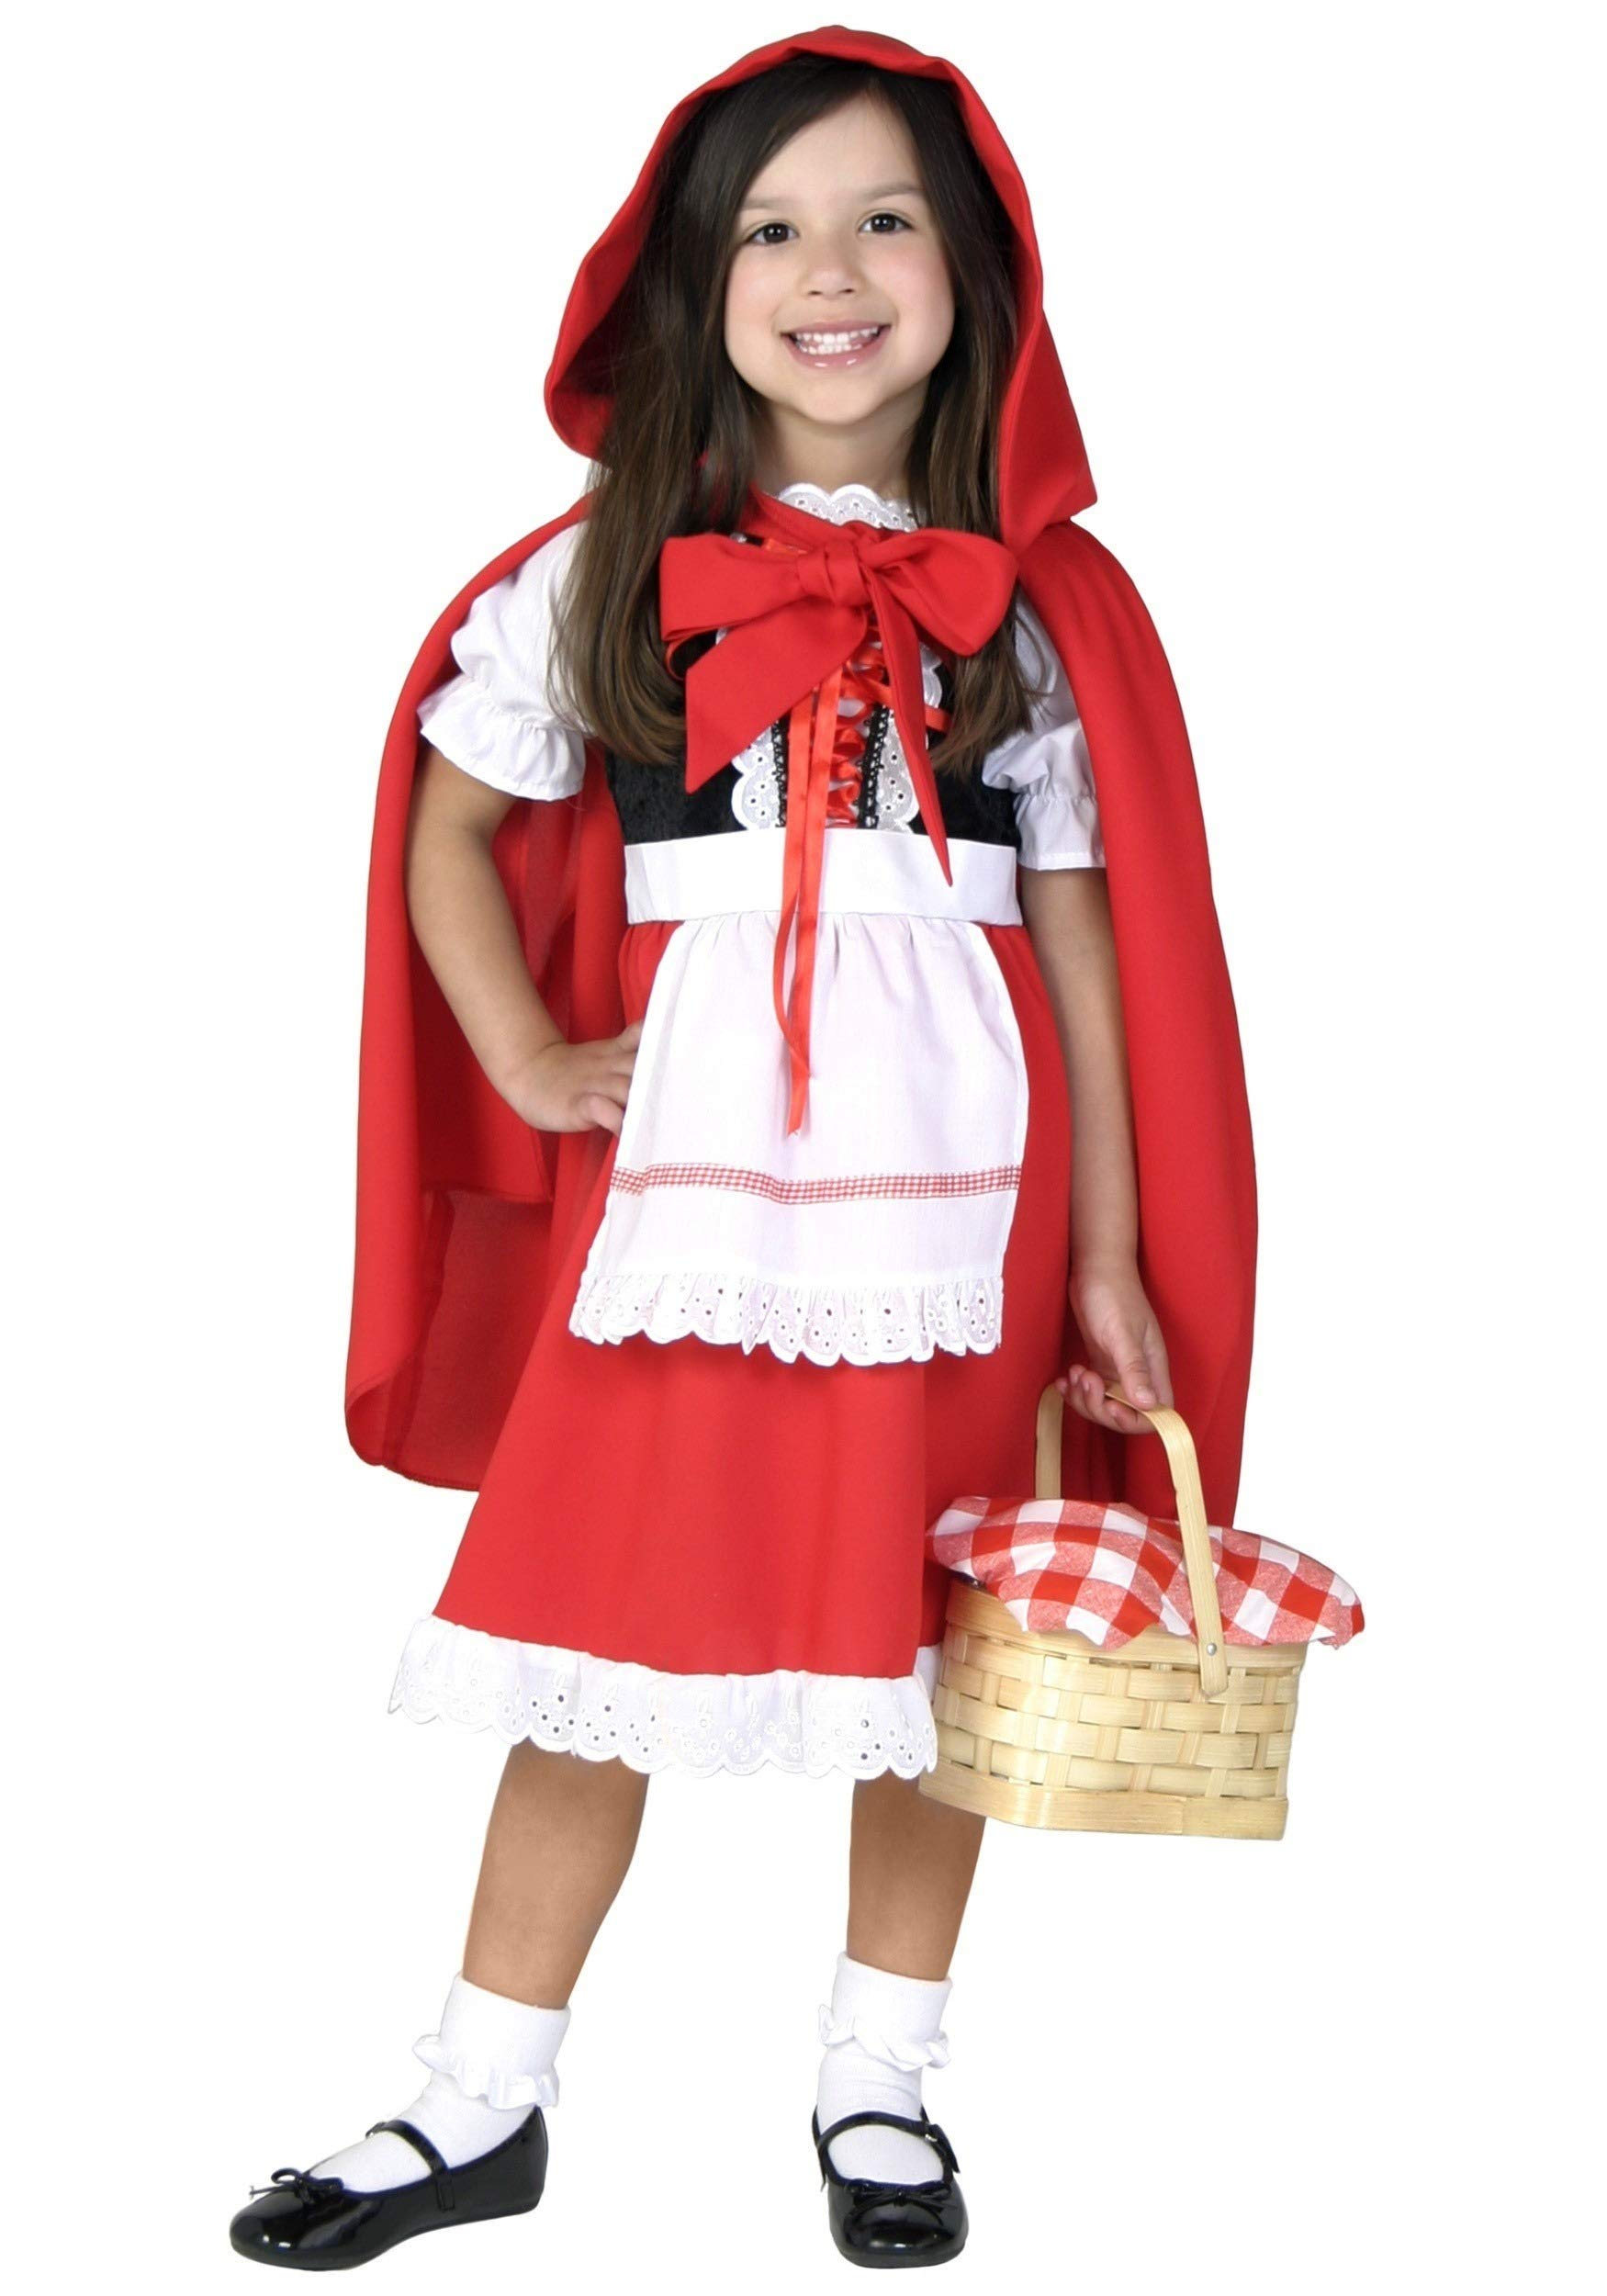 Fun Costumes Girls' Deluxe Little Red Riding Hood Costume X-Small by Fun Costumes